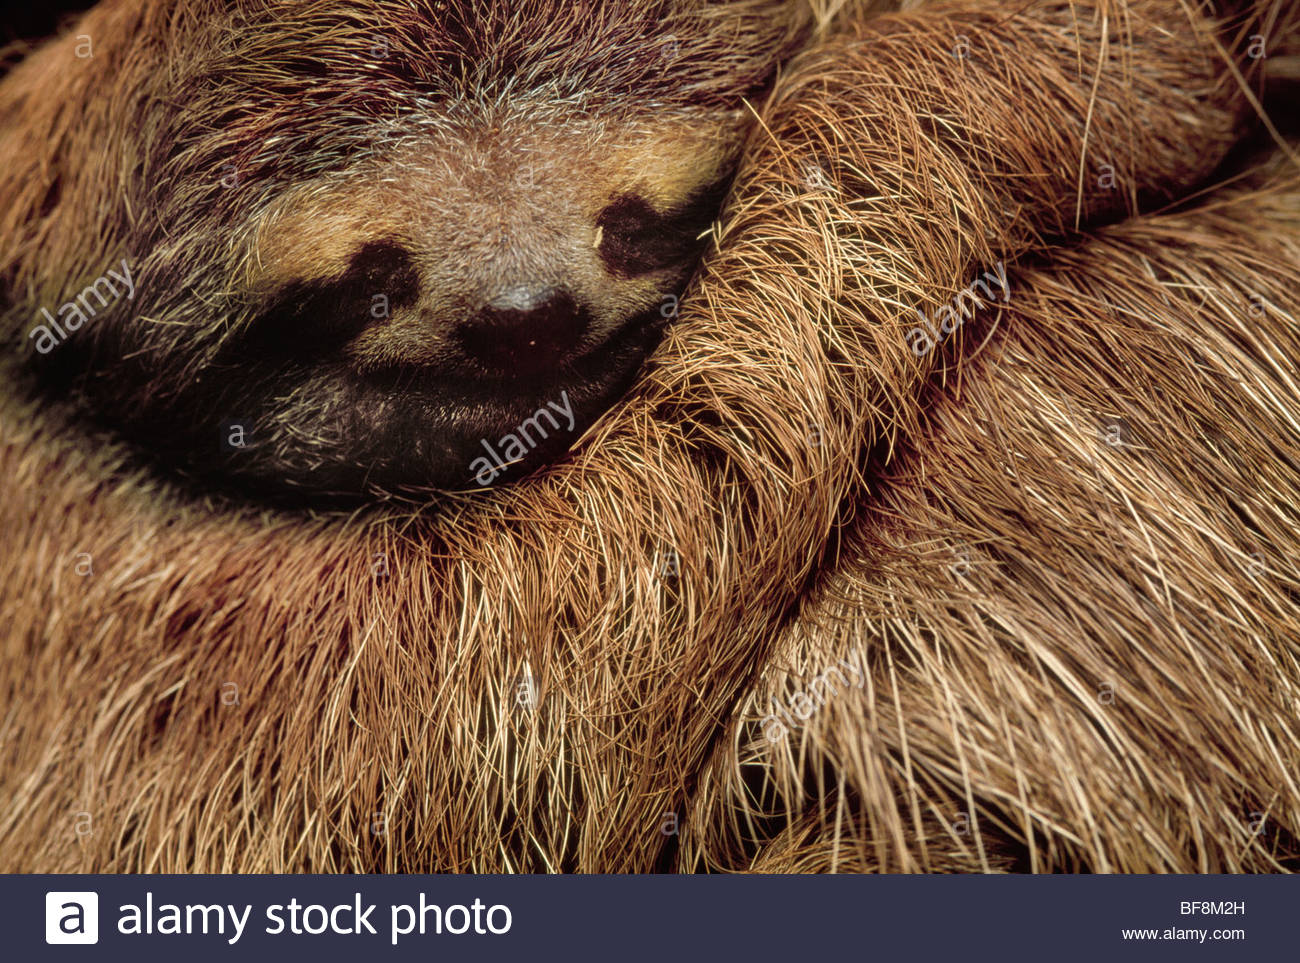 Brown-throat three-toed sloth sleeping, Bradypus variegatus, Barro Colorado Island, Panama - Stock Image